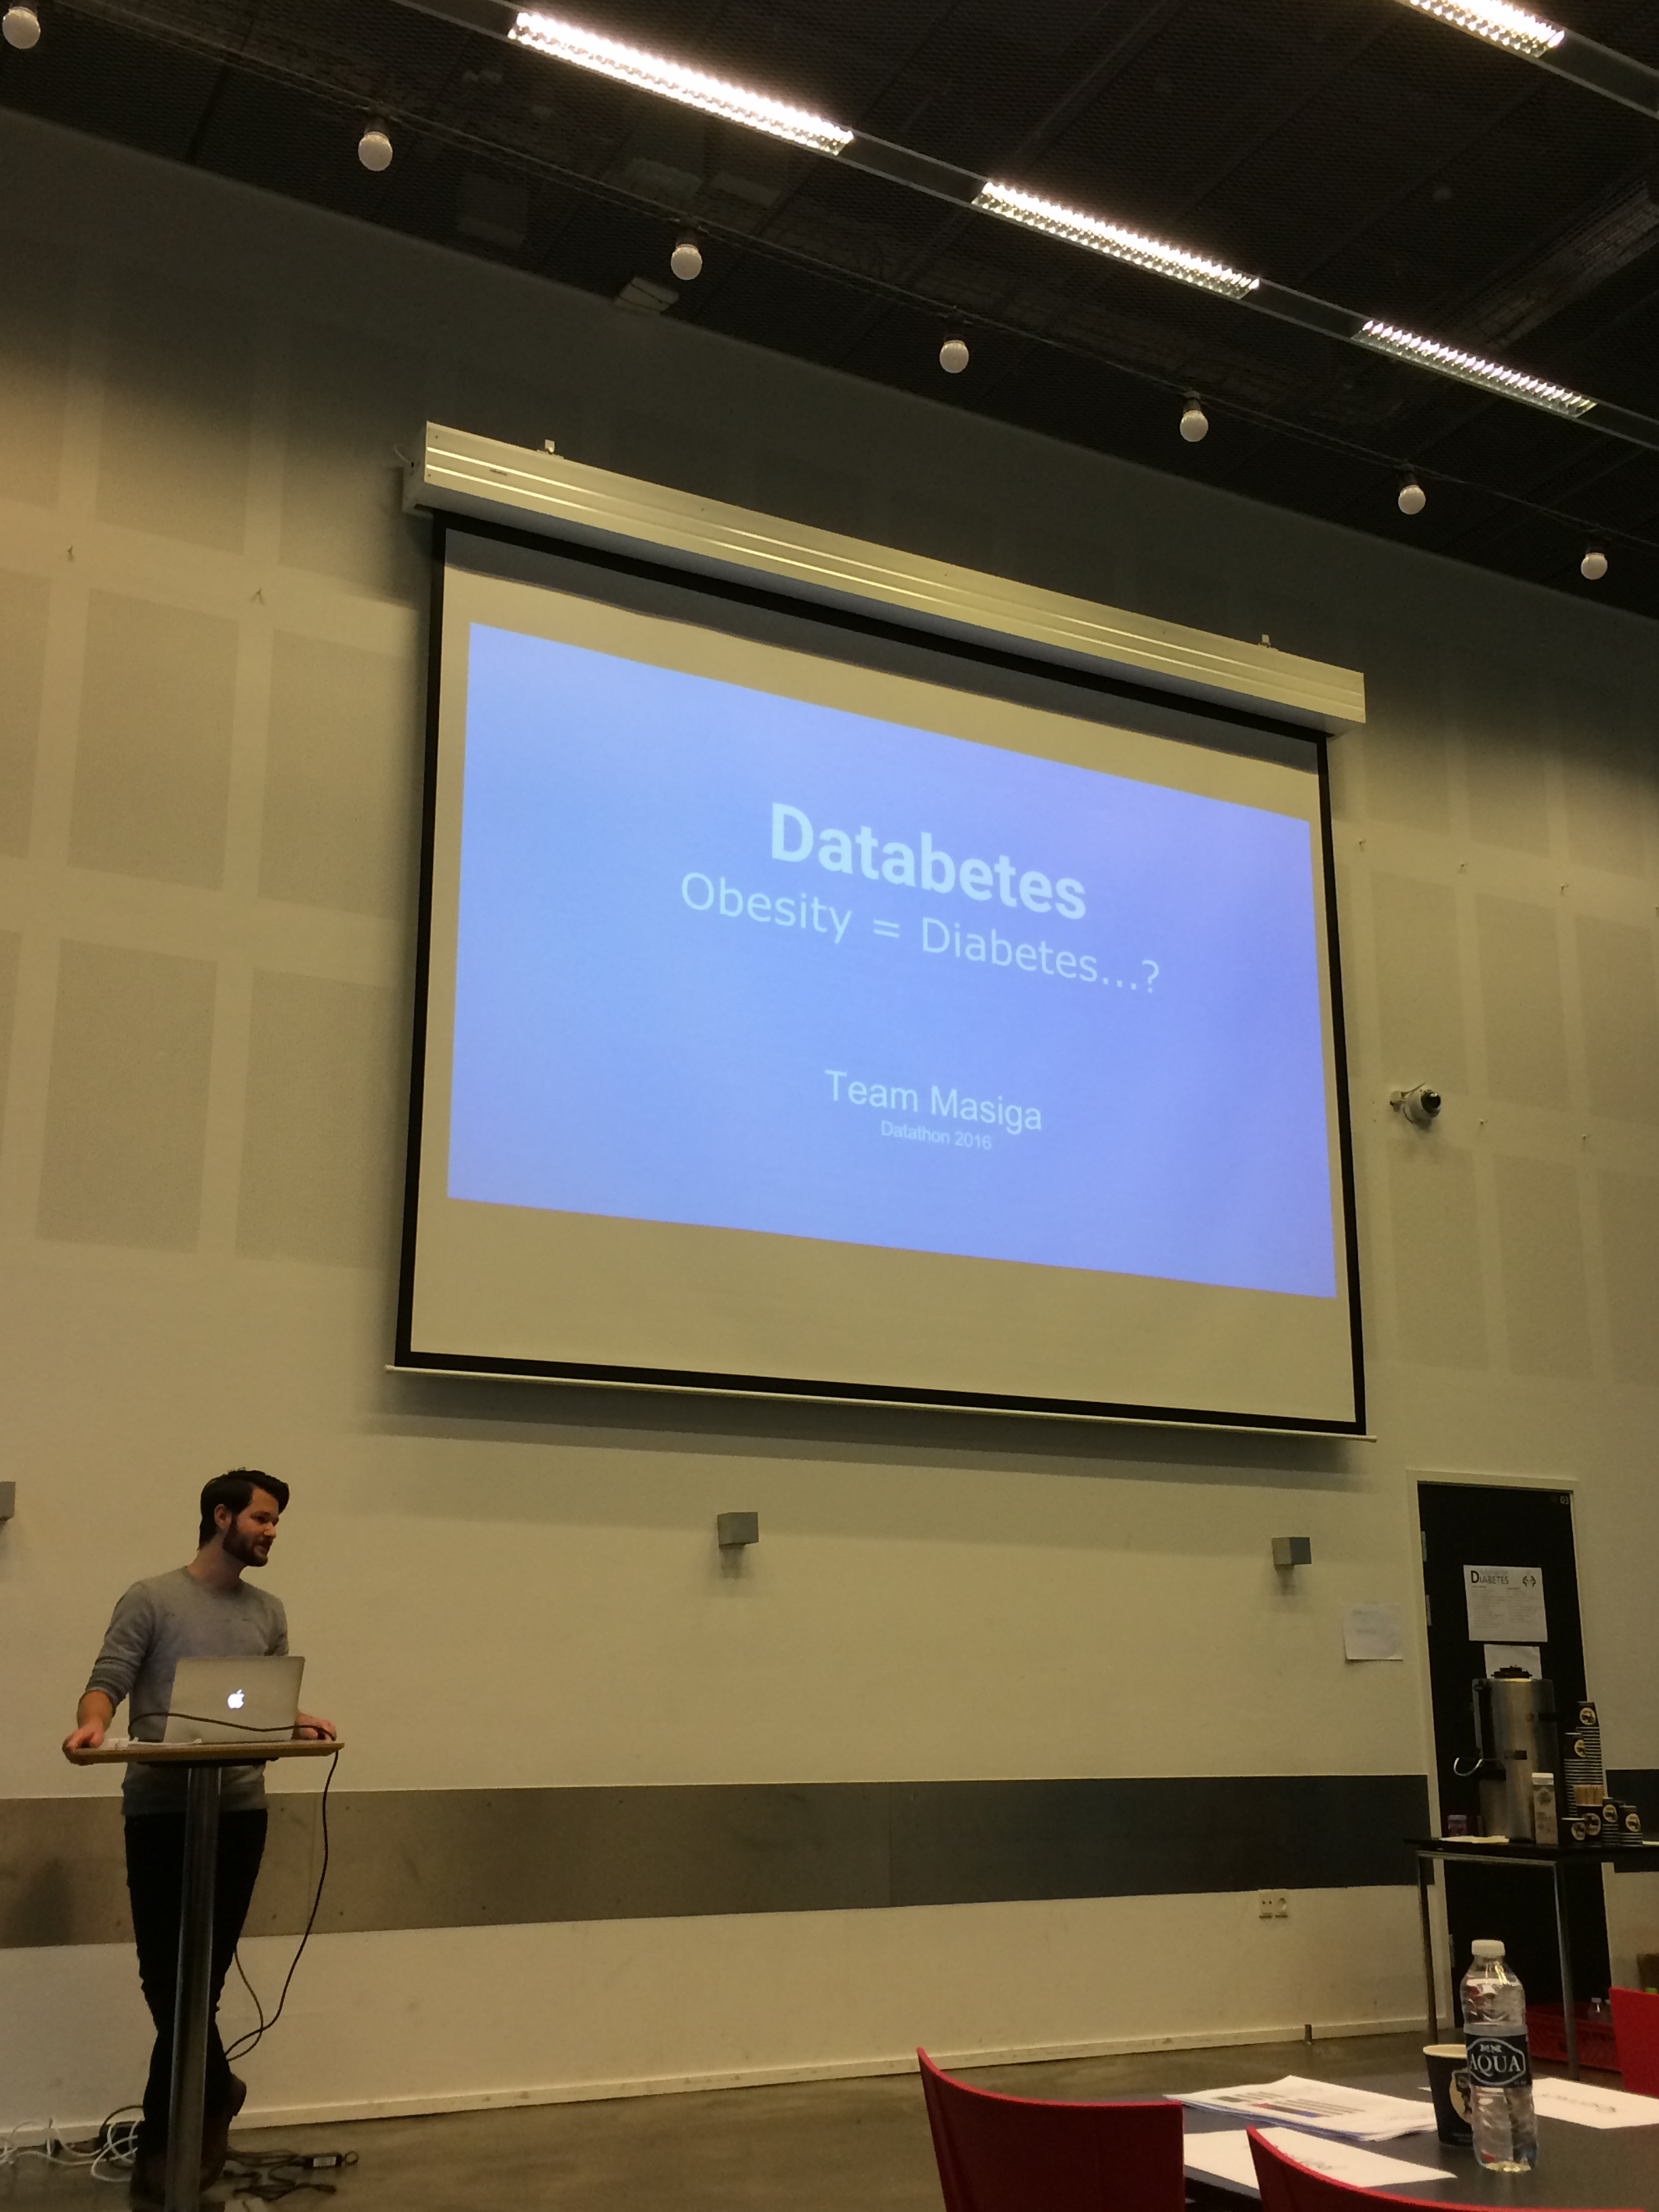 Datathon for Diabetes.